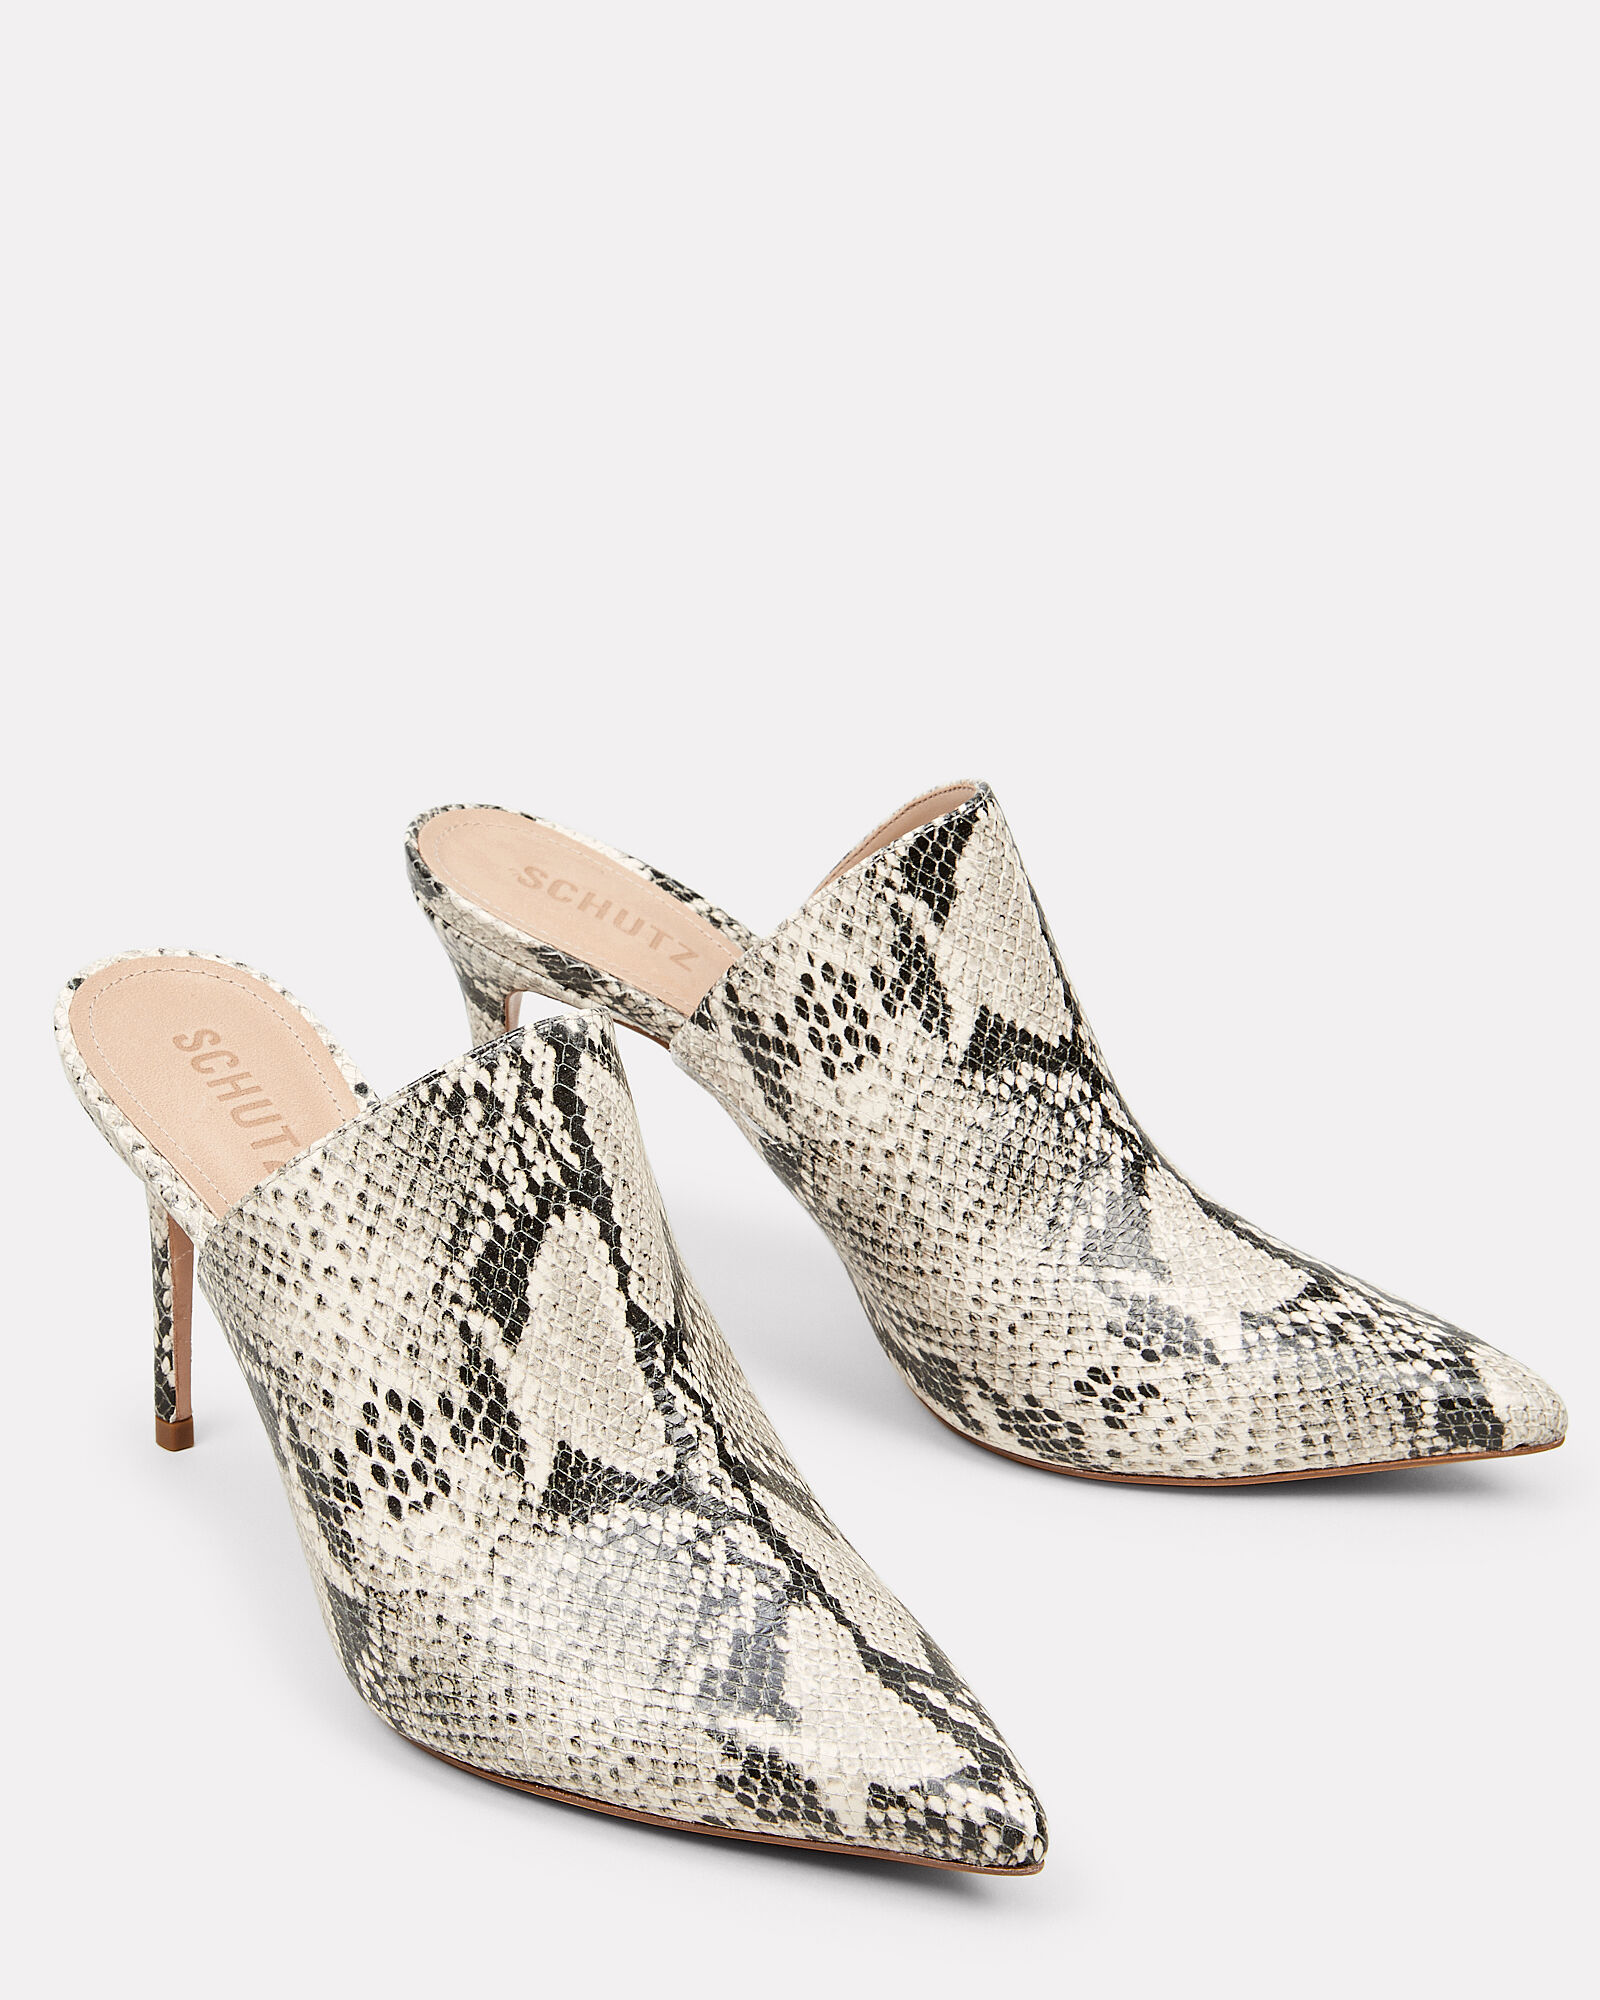 Bardot Snake Embossed Leather Mules, GREY, hi-res